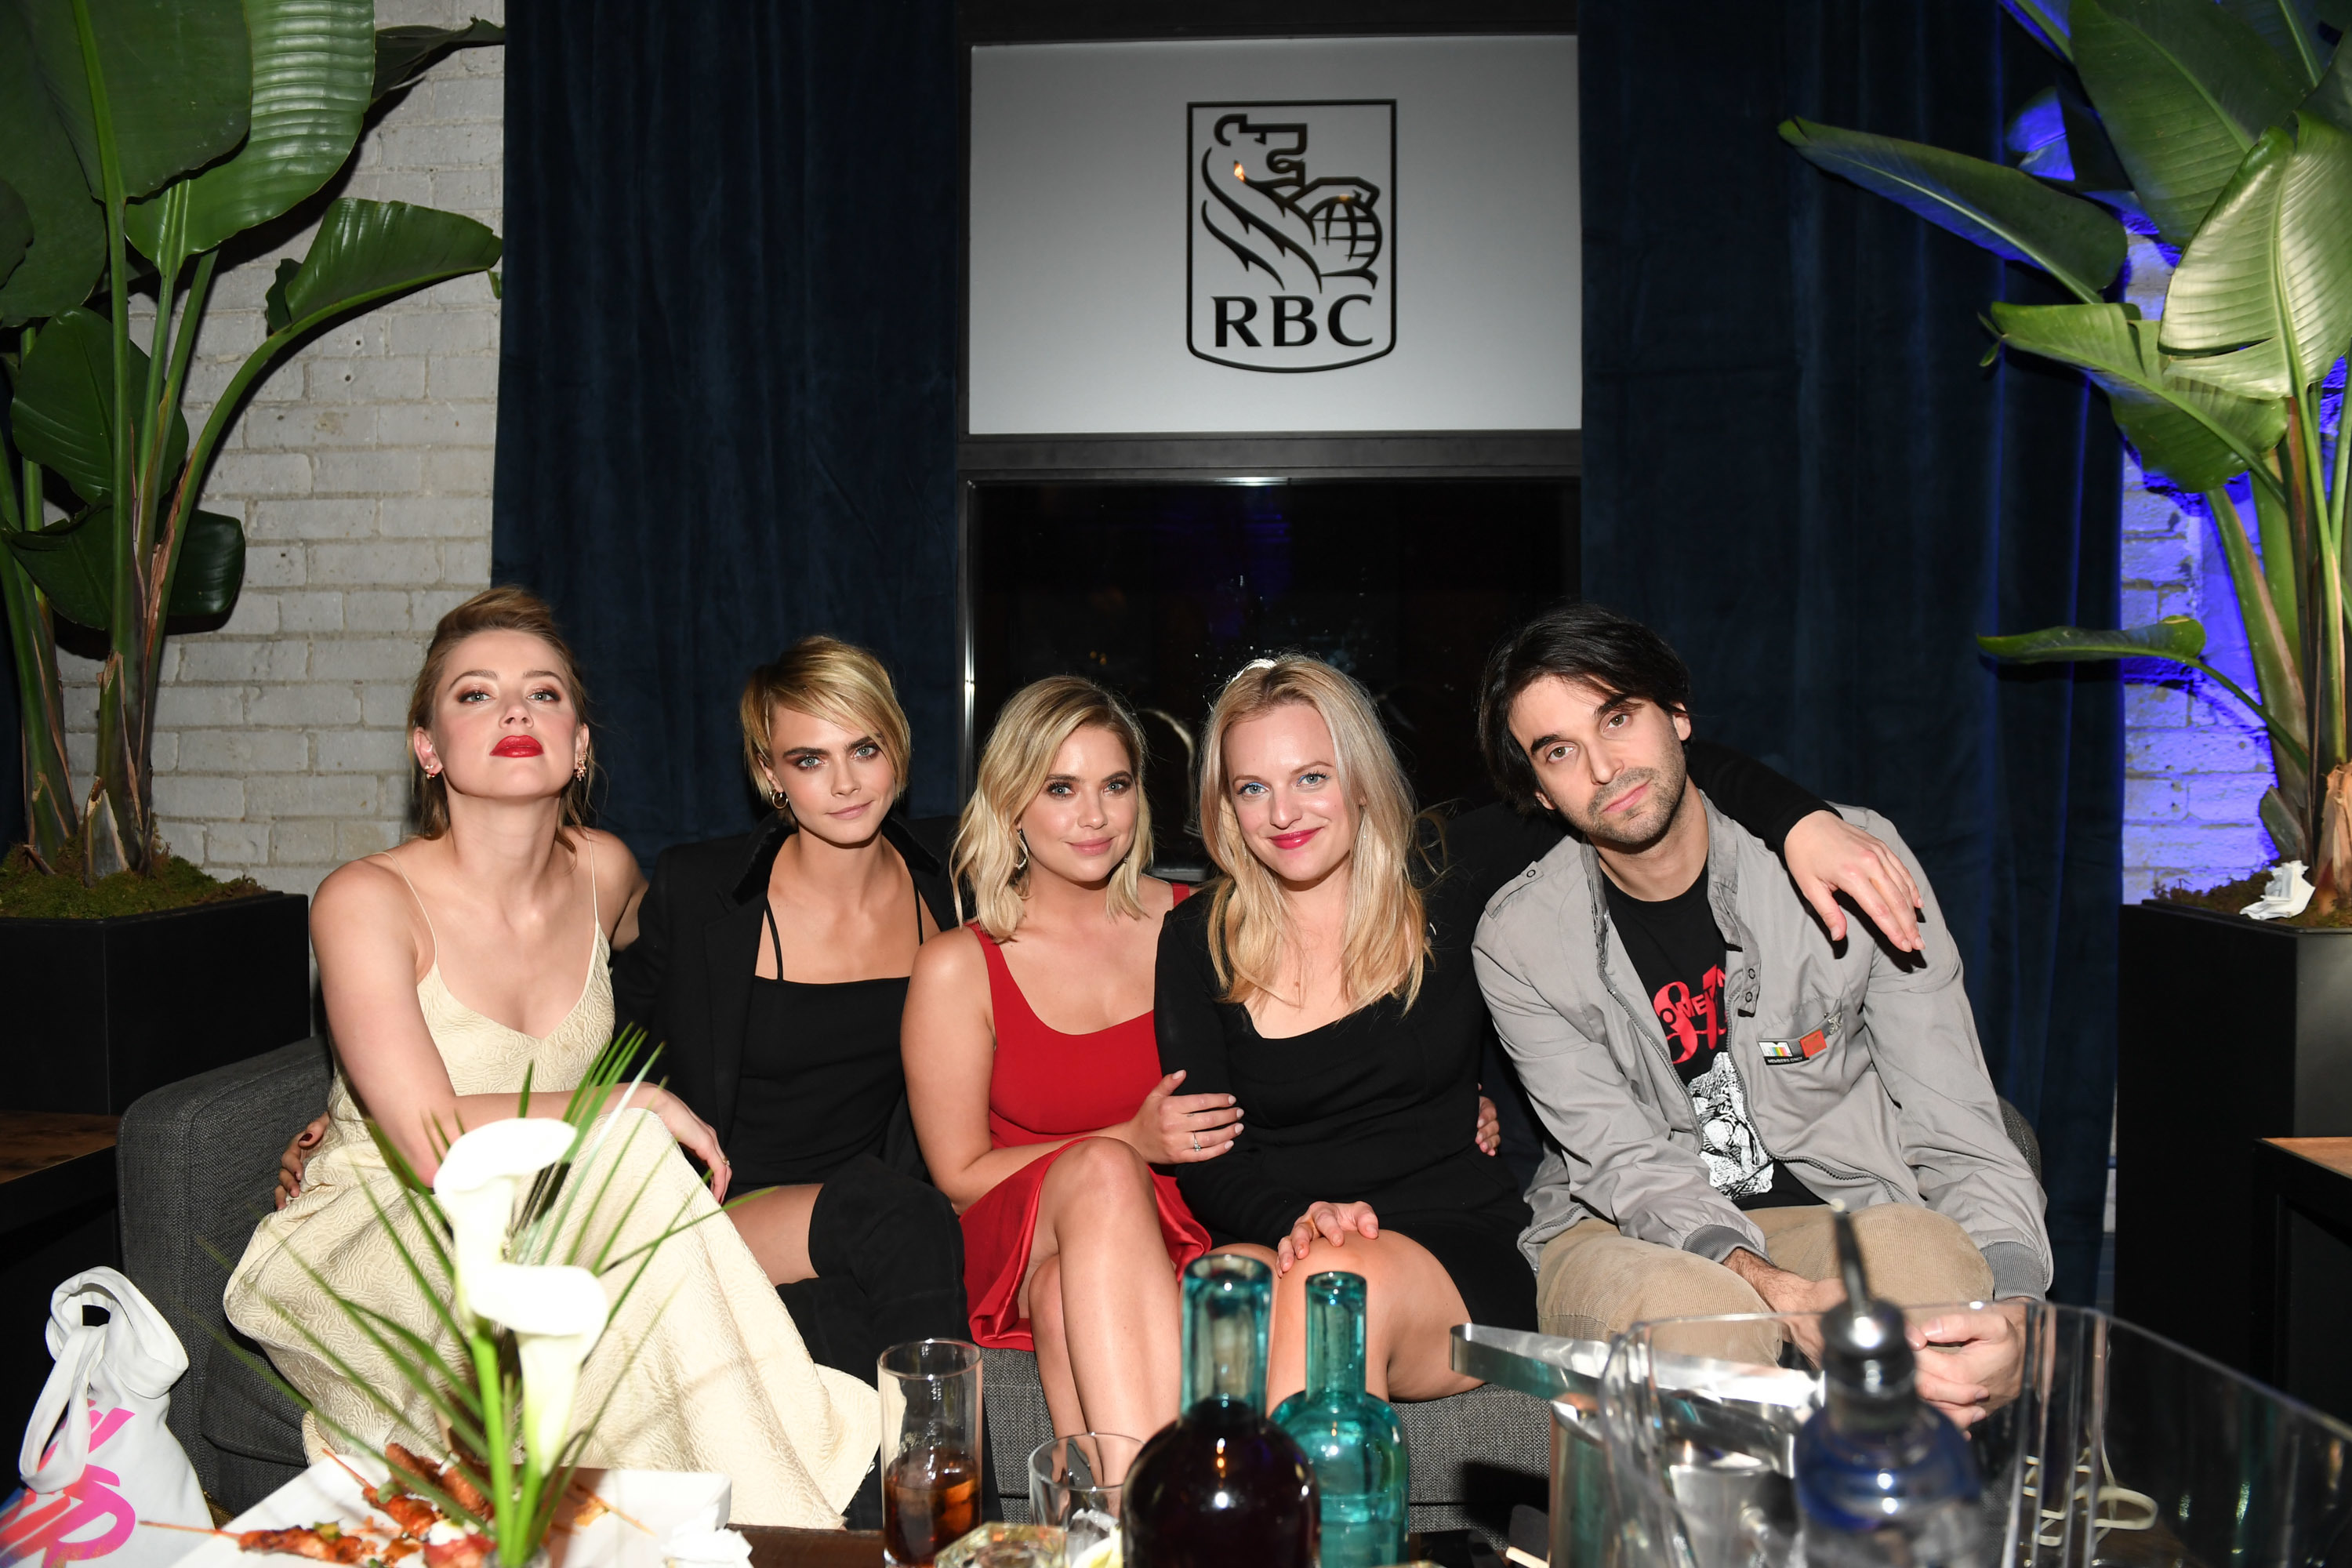 Amber Heard, Cara Delevingne, Ashley Benson, Elisabeth Moss and Alex Ross Perry attend a party for Her Smell during the Toronto International Film Festival at the RBC House on Sept. 9, 2018.